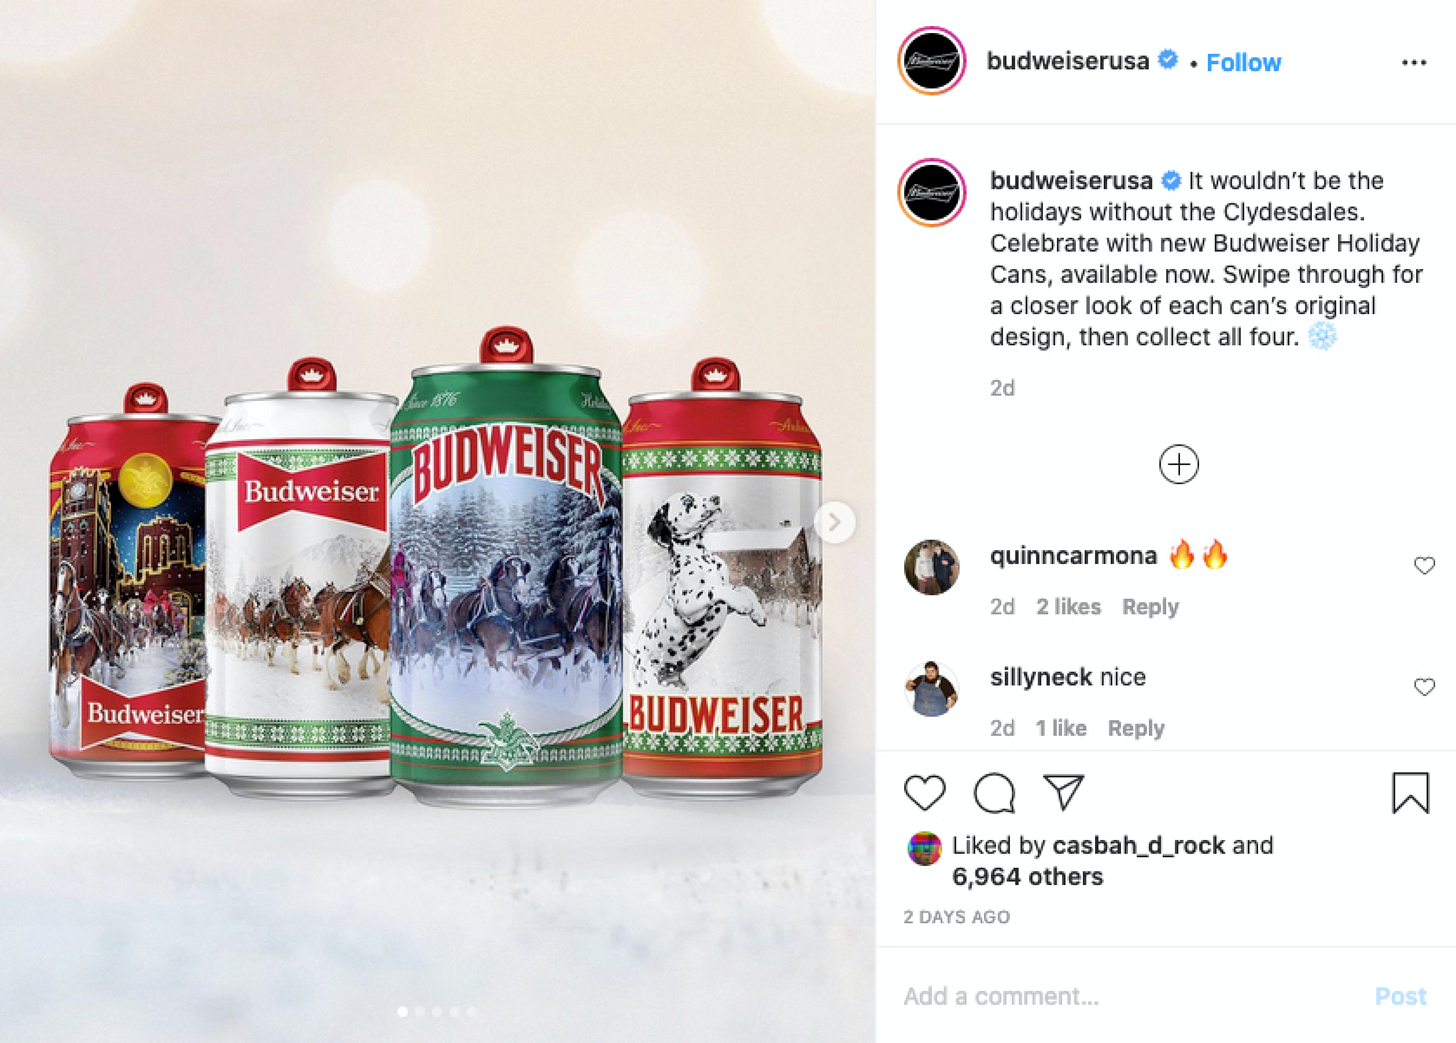 Budweiser limited-edition holiday cans